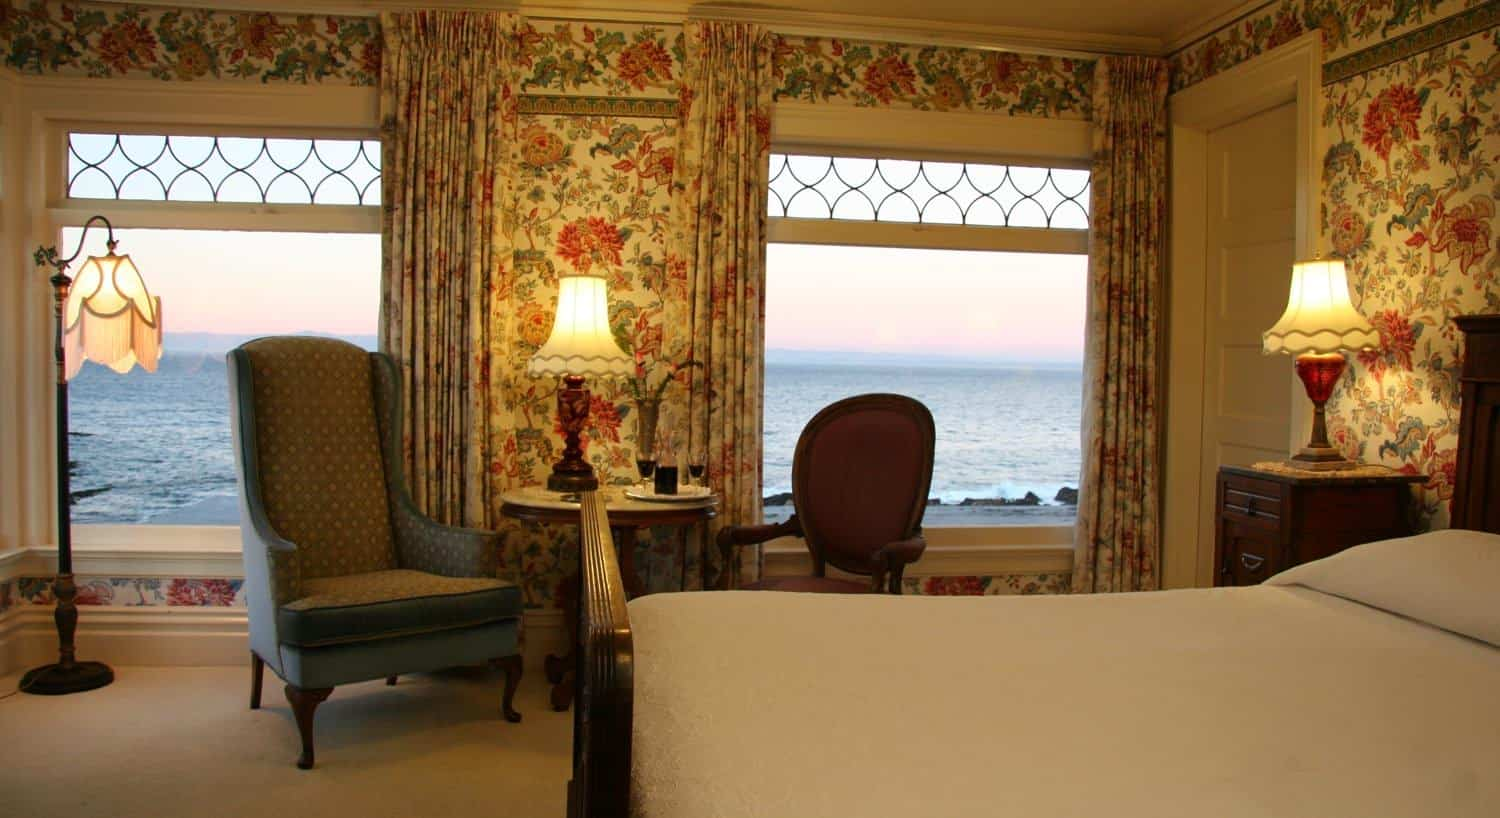 Marie guest room, windows overlooking the ocean, floral papered walls, wood bed and two chairs and a table